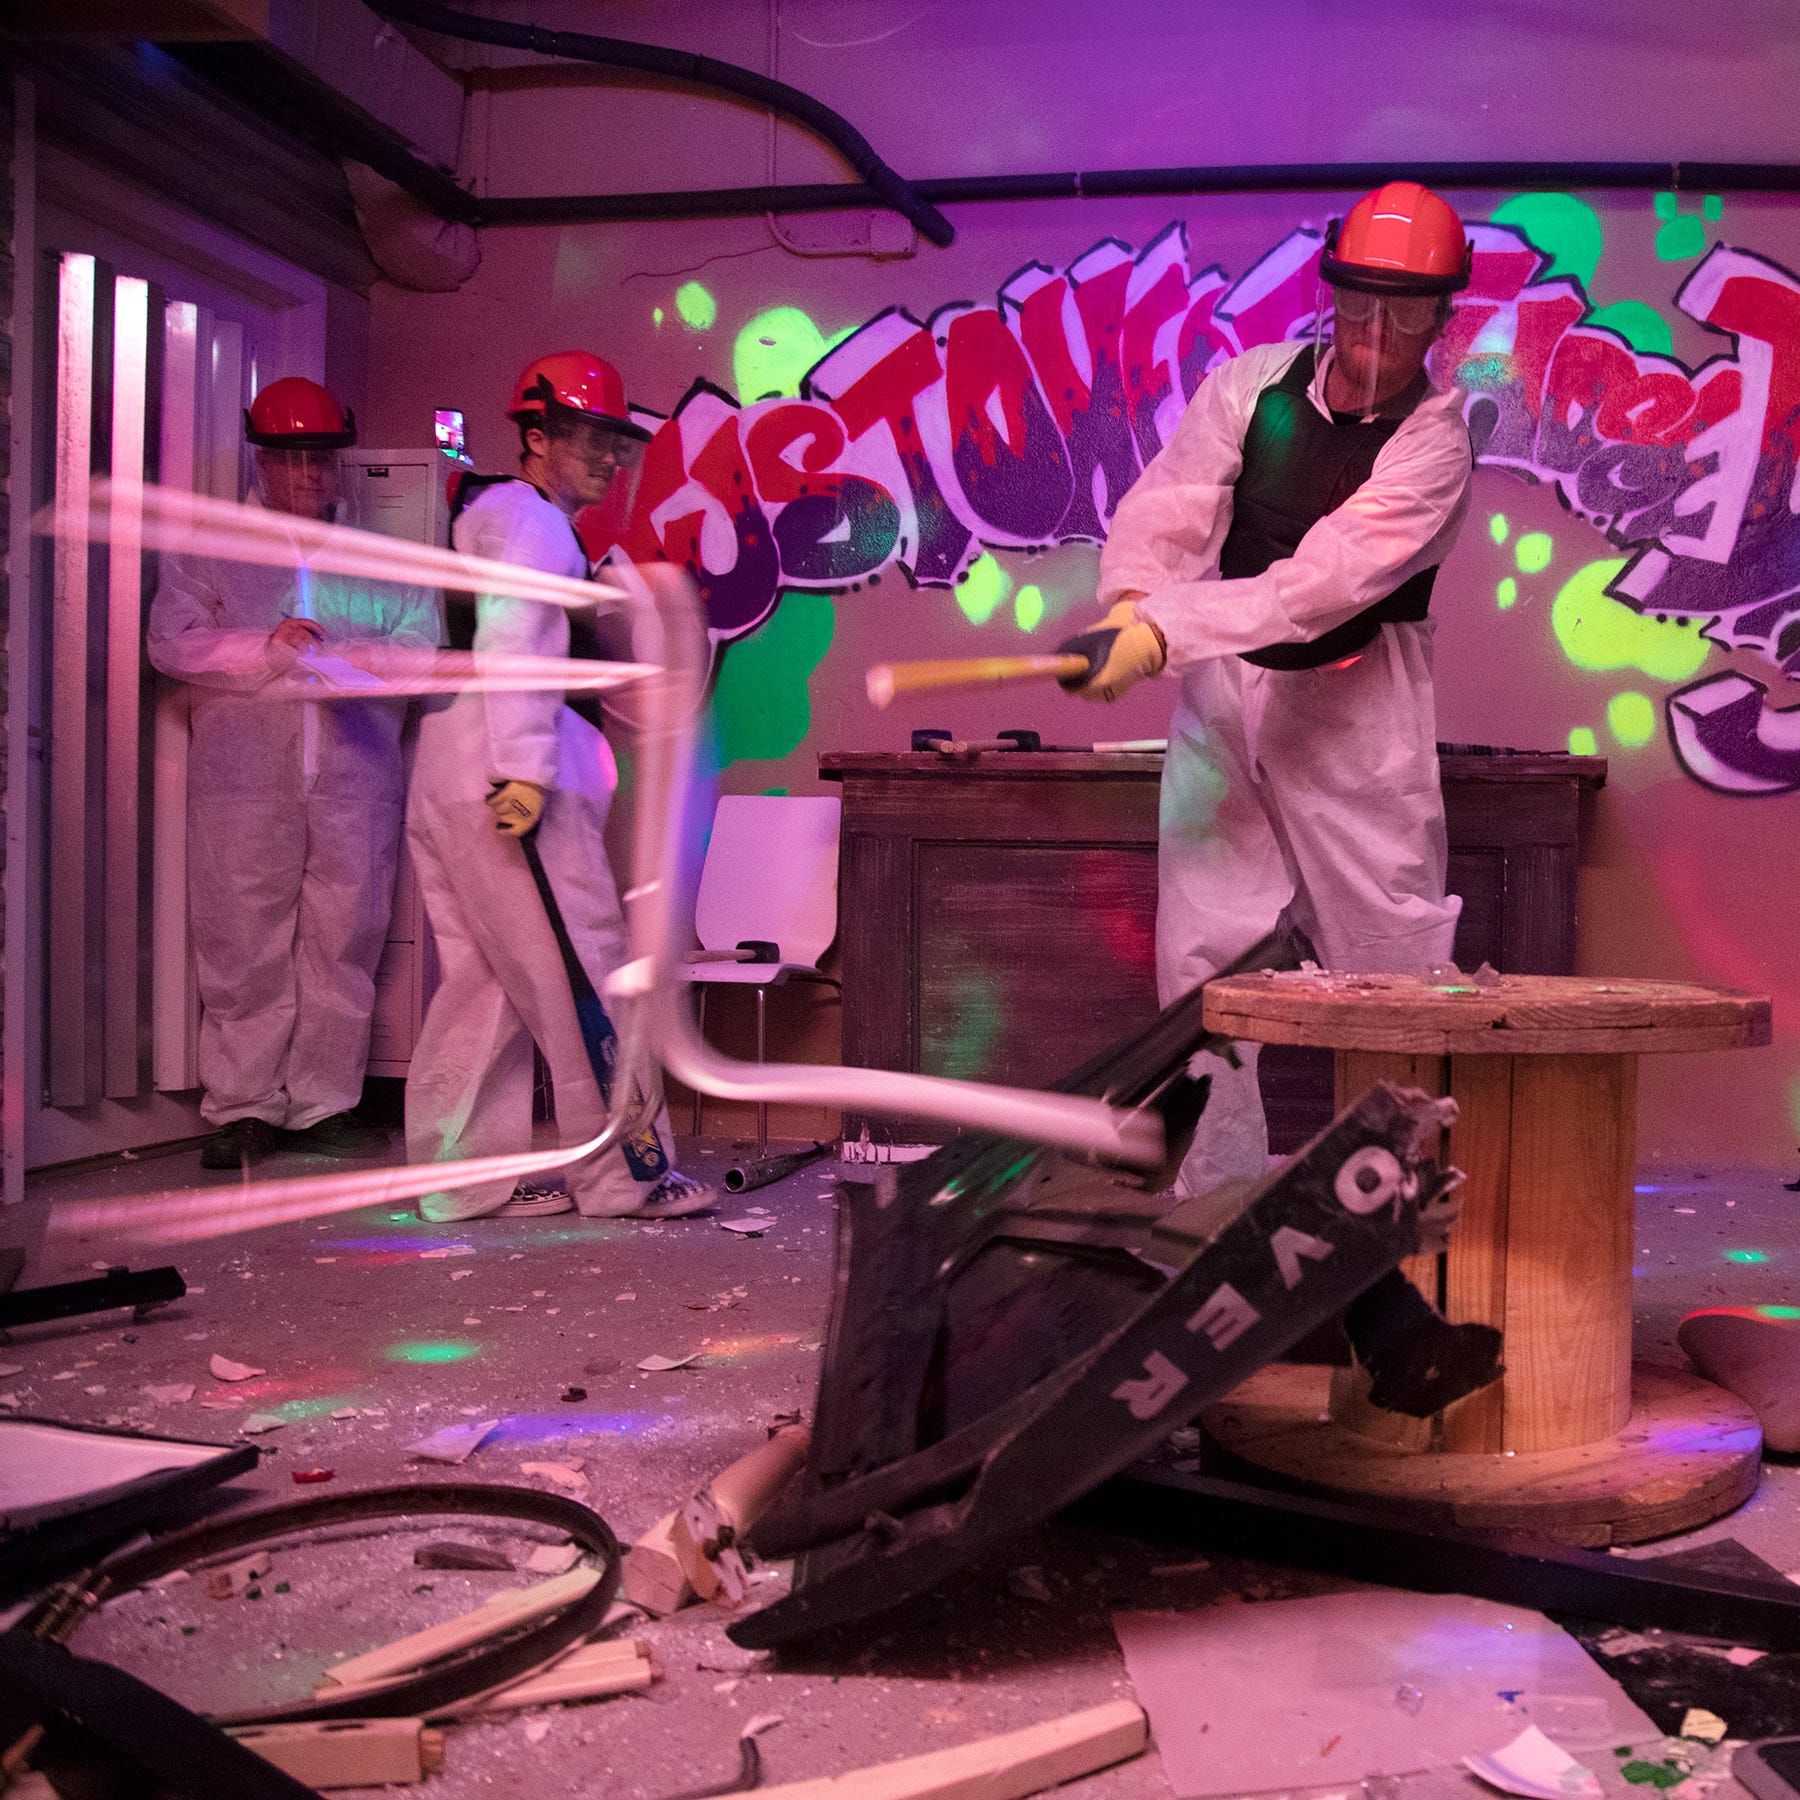 Rage rooms in Fort Myers: Break stuff, feel good as trend finally comes to Southwest Florida